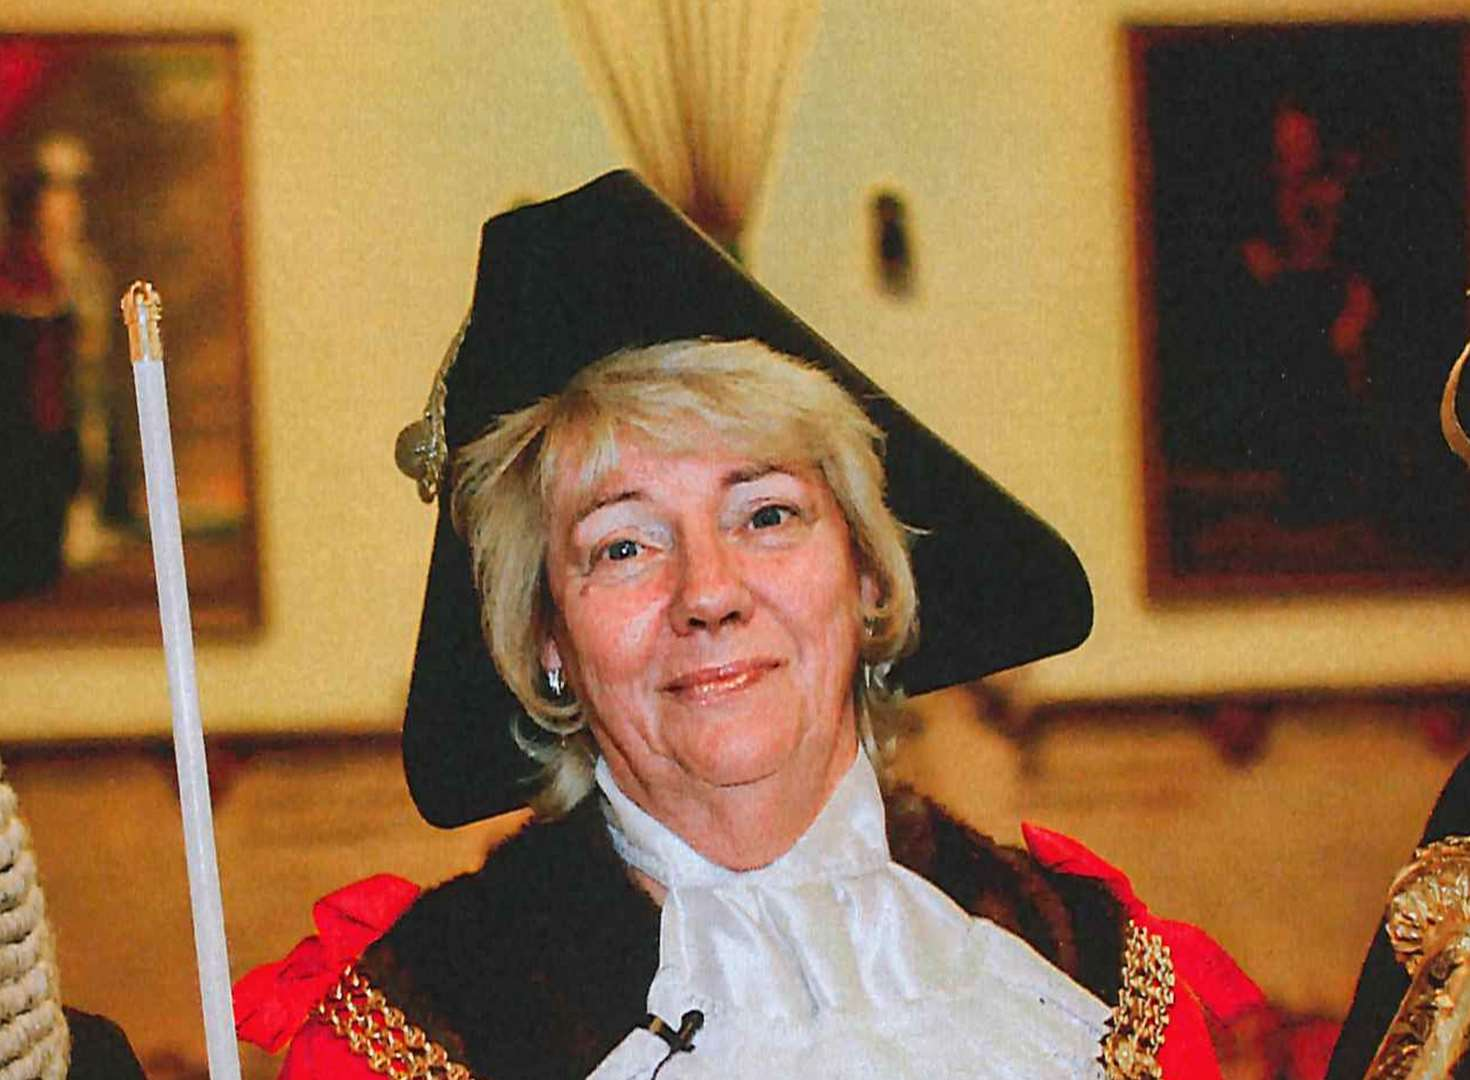 Ex-mayor - tributes and fundraising continue